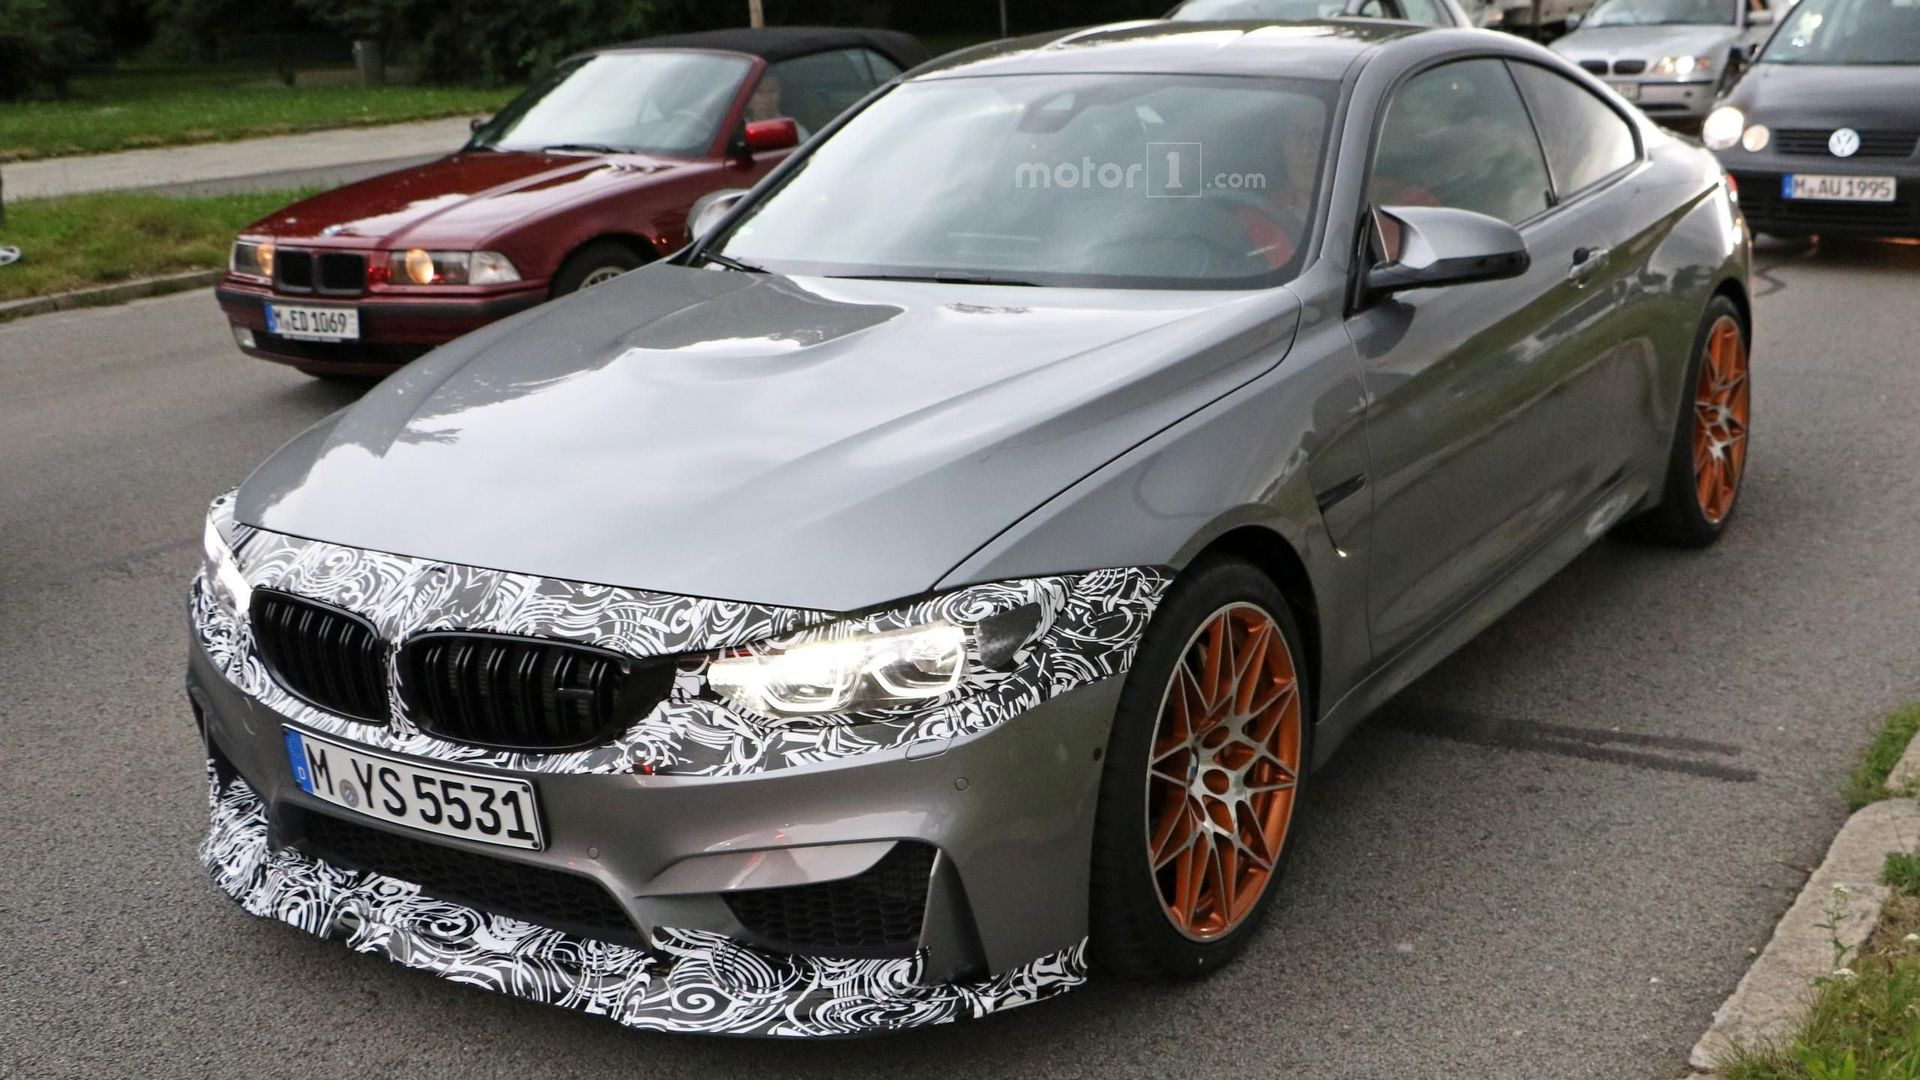 BMW M4 facelift spied riding on GTS' wheels